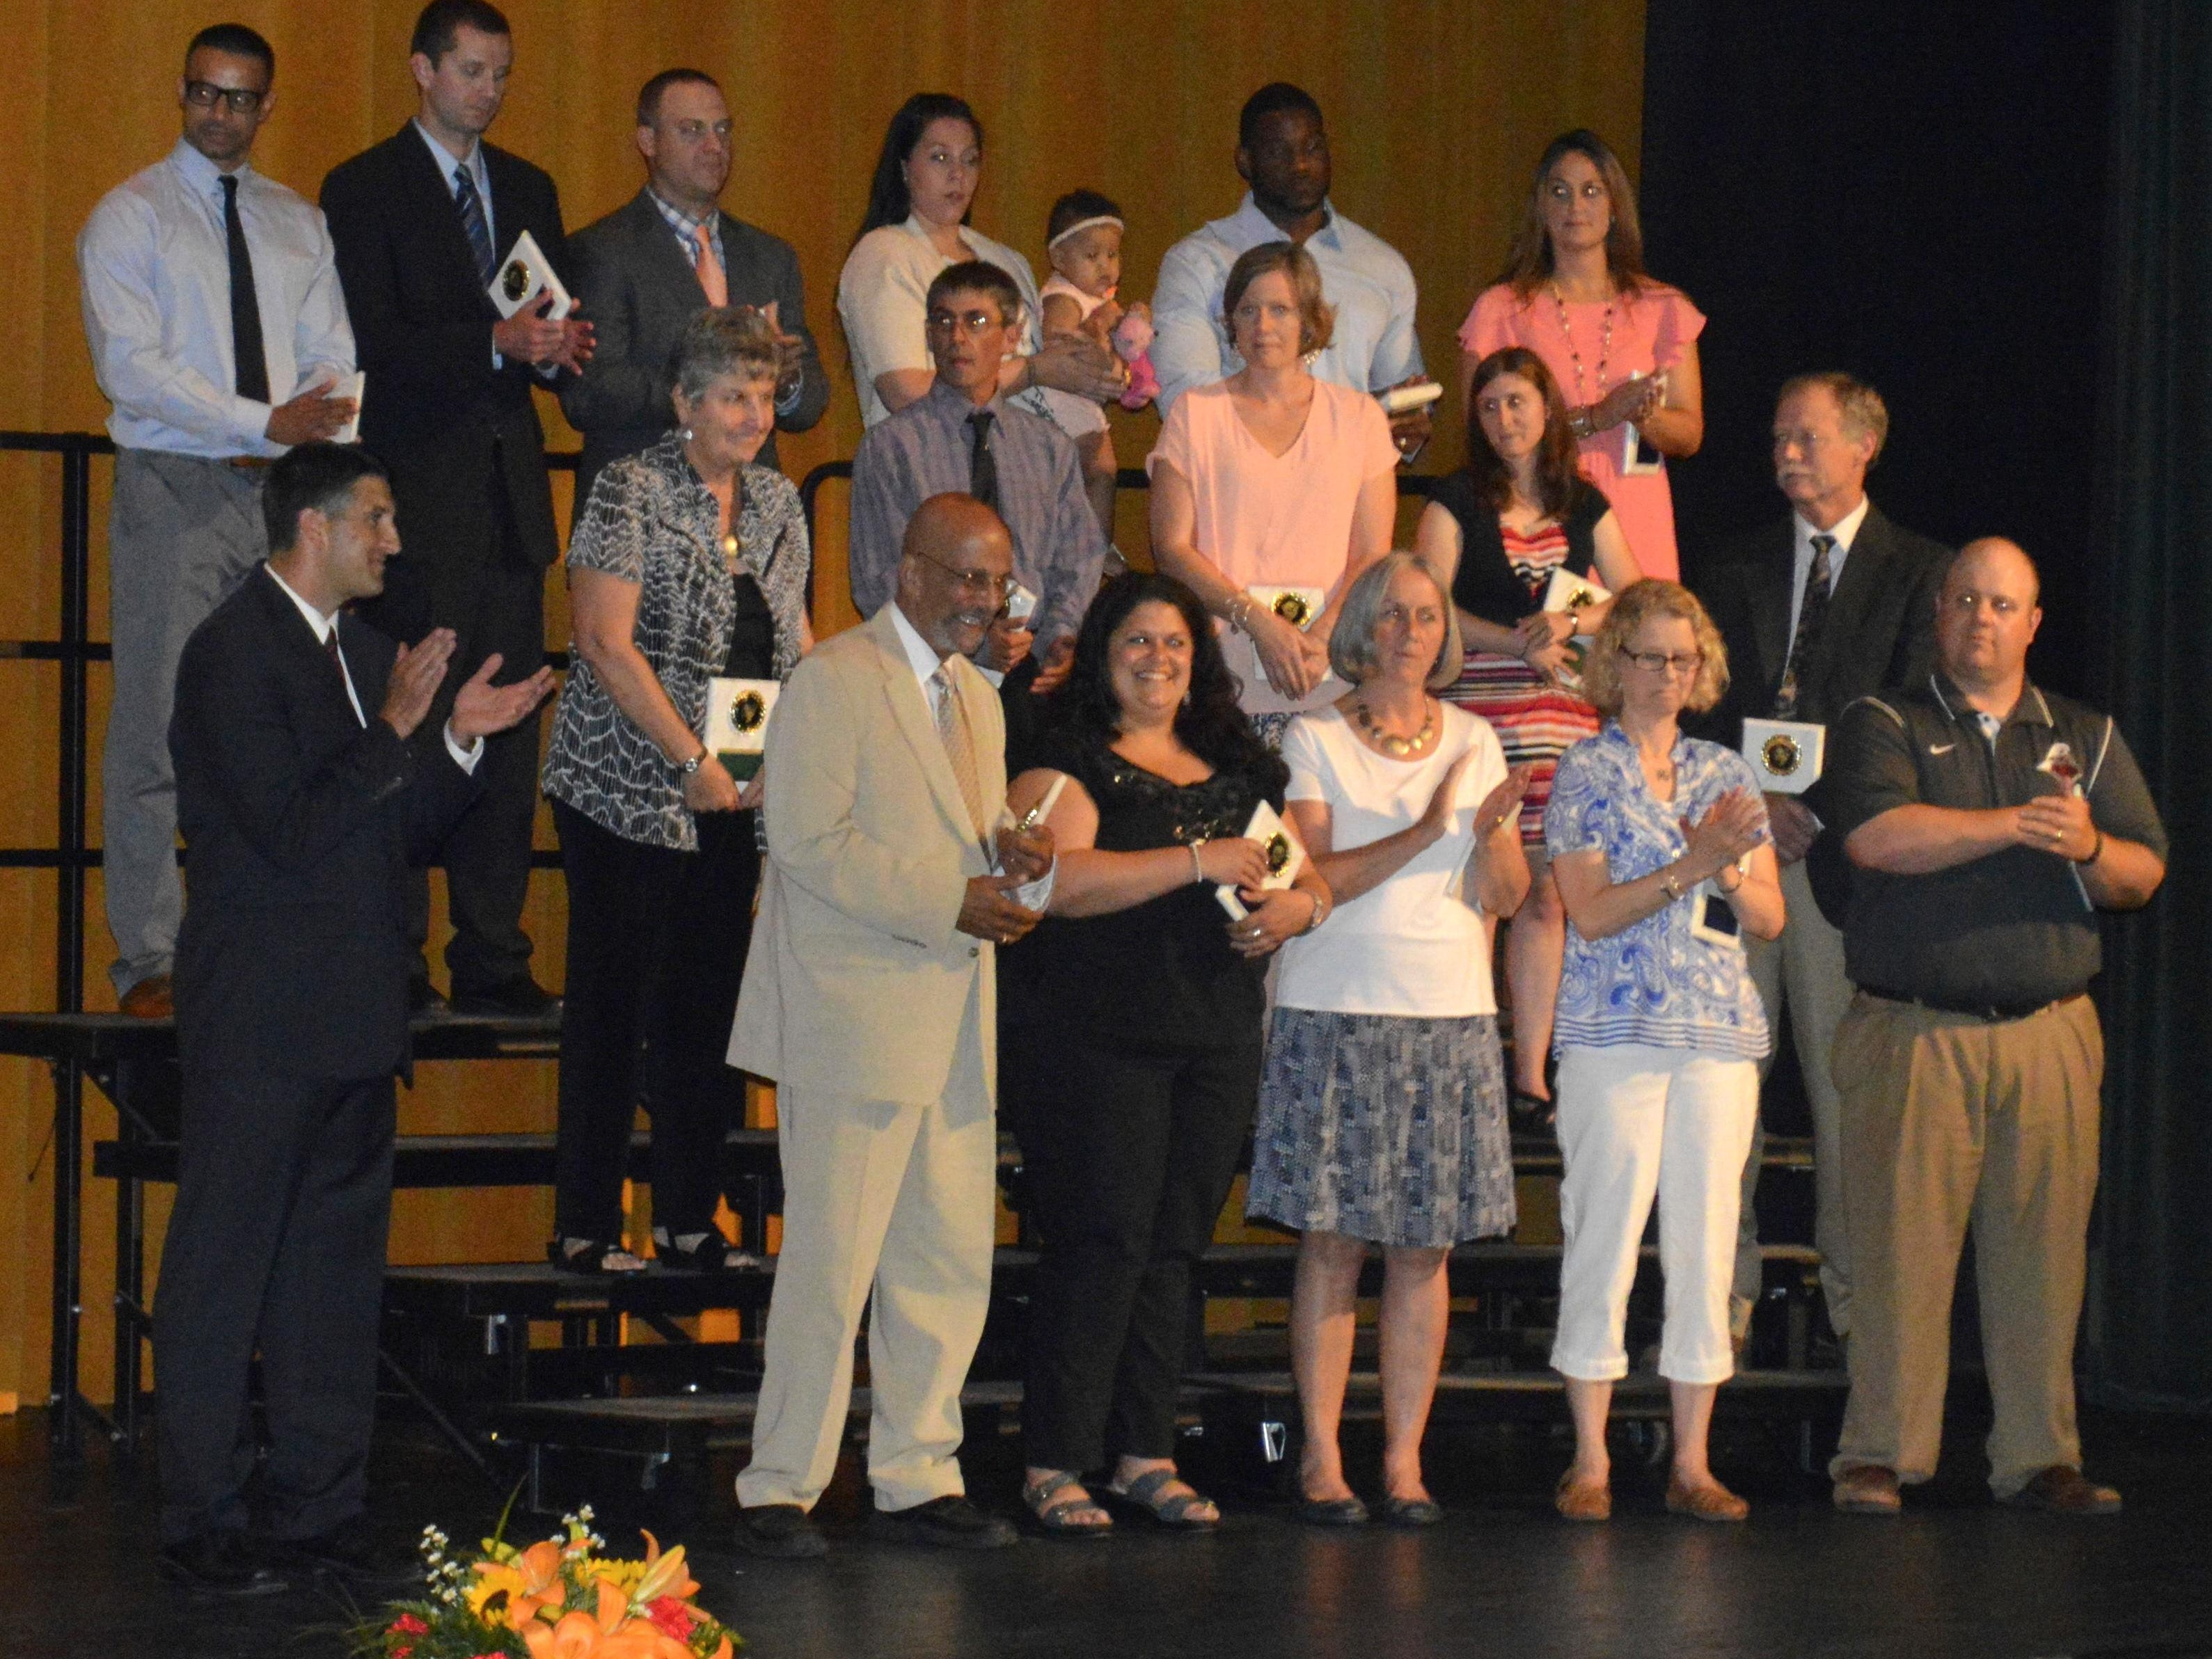 A total of 23 people were inducted into the EFA and Southside halls of fame during a ceremony June 11 at Elmira High School.